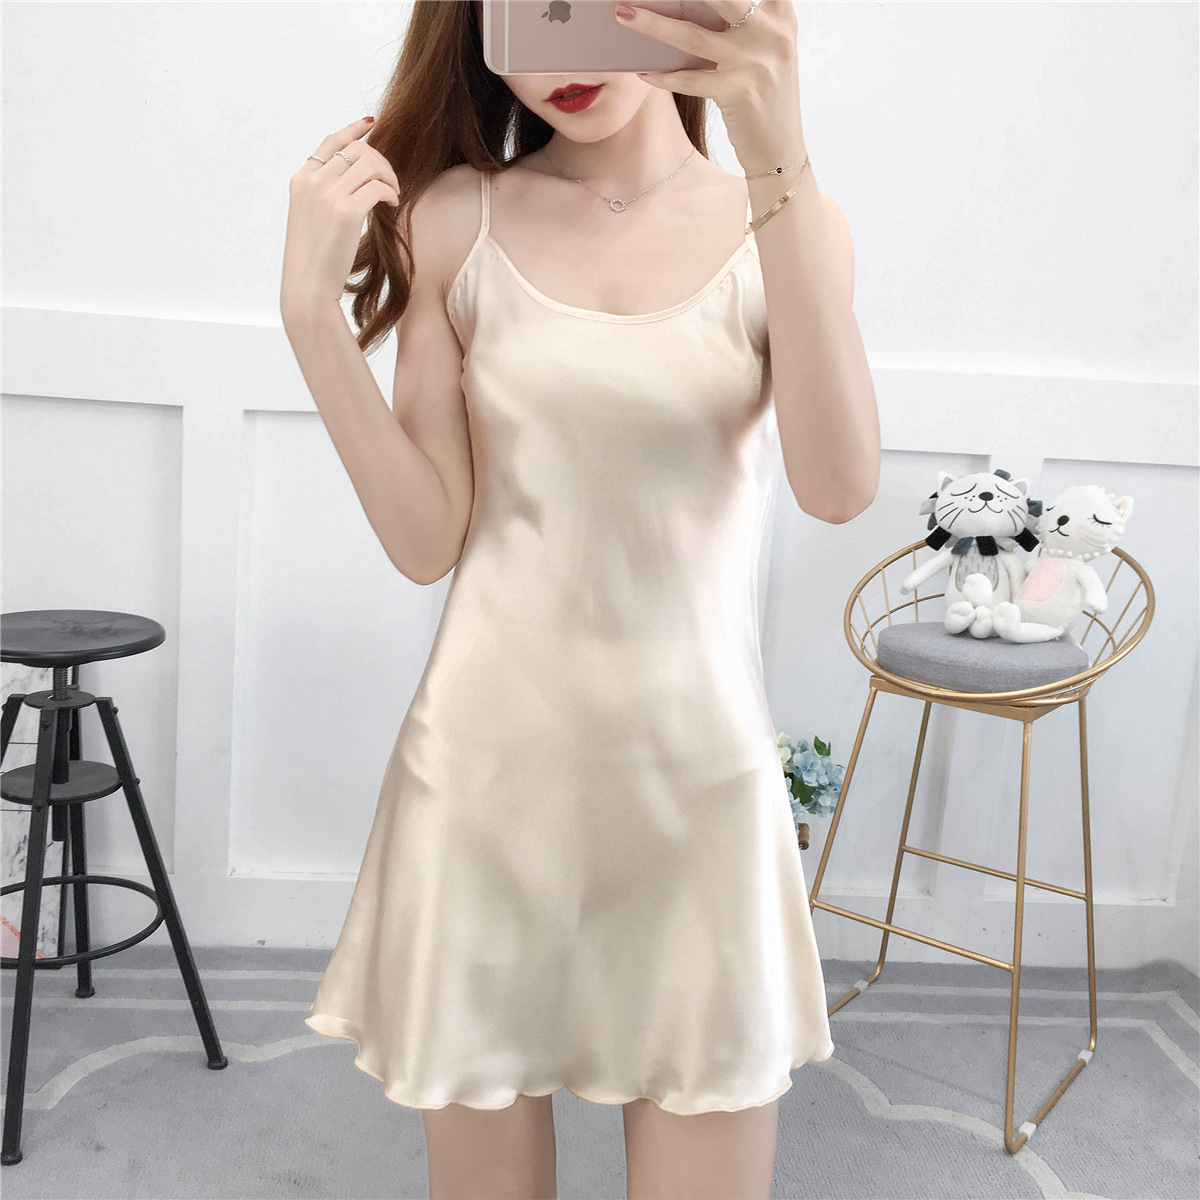 3XL Women Nightwear Summer Nightie Sleeveless Home Dress Satin Nightdress Nightgown Sexy Sleepwear Sleepshirt Plus Size